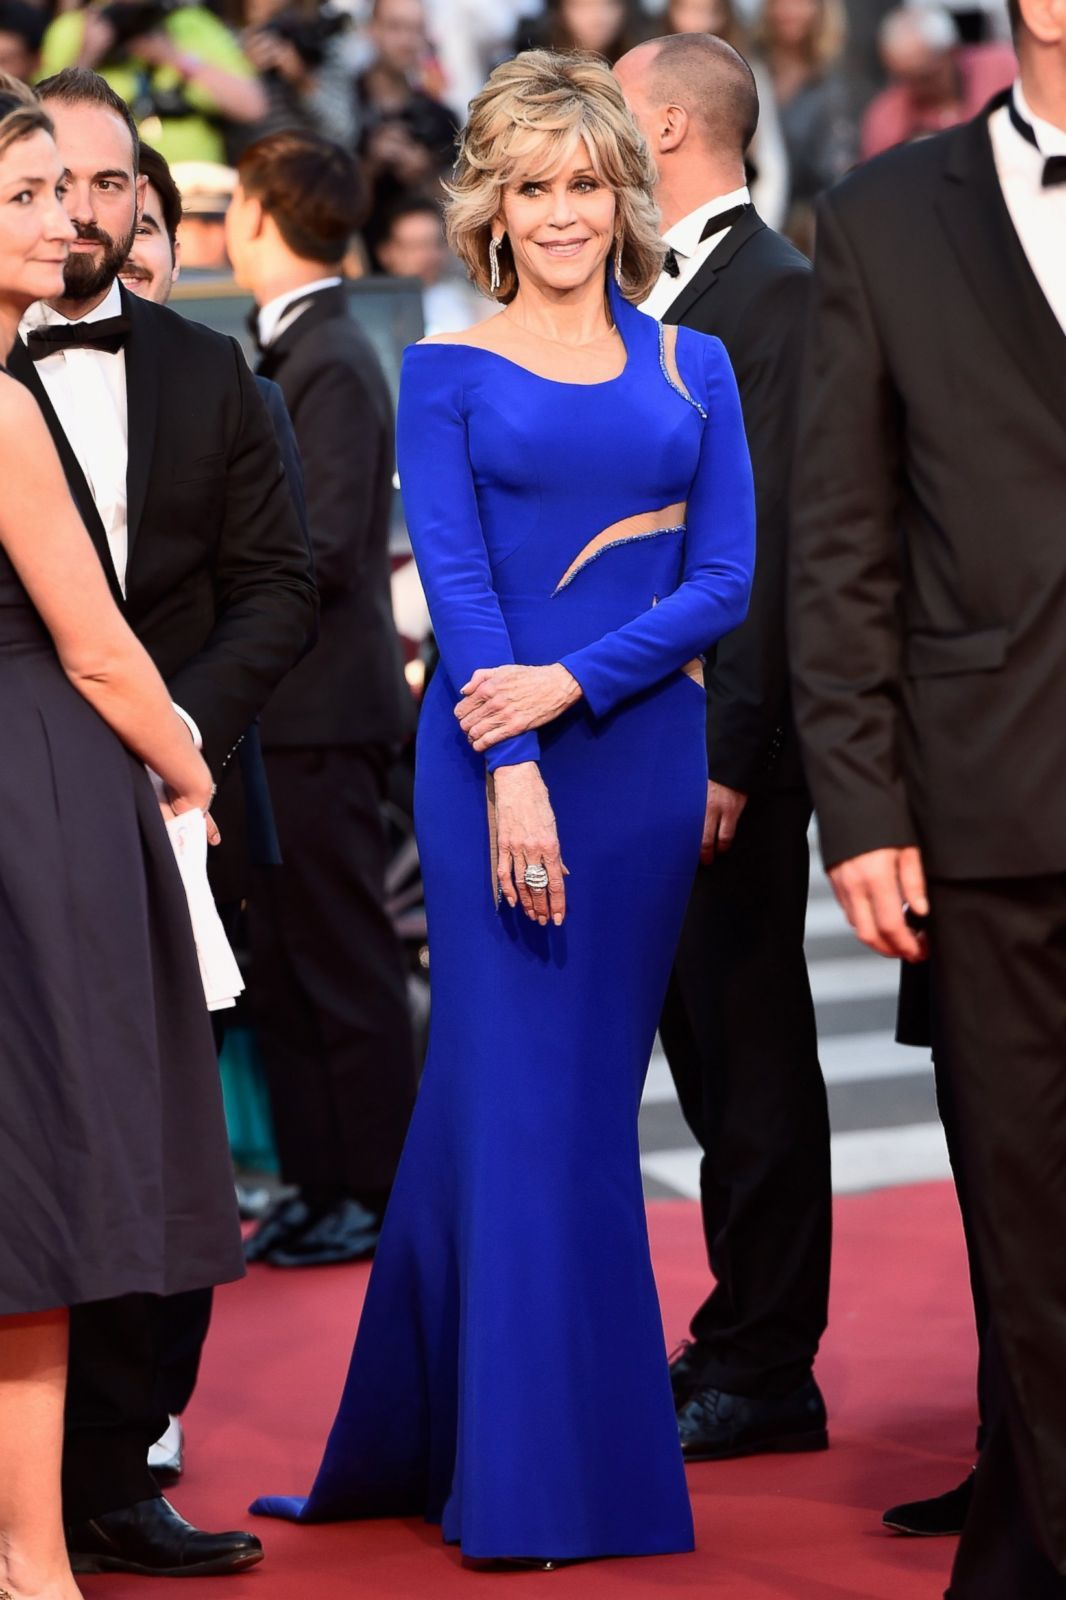 Jane Fonda attends the 'The Sea Of Trees' premiere during the 68th annual Cannes Film Festival on May 16, 2015 in Cannes, France.